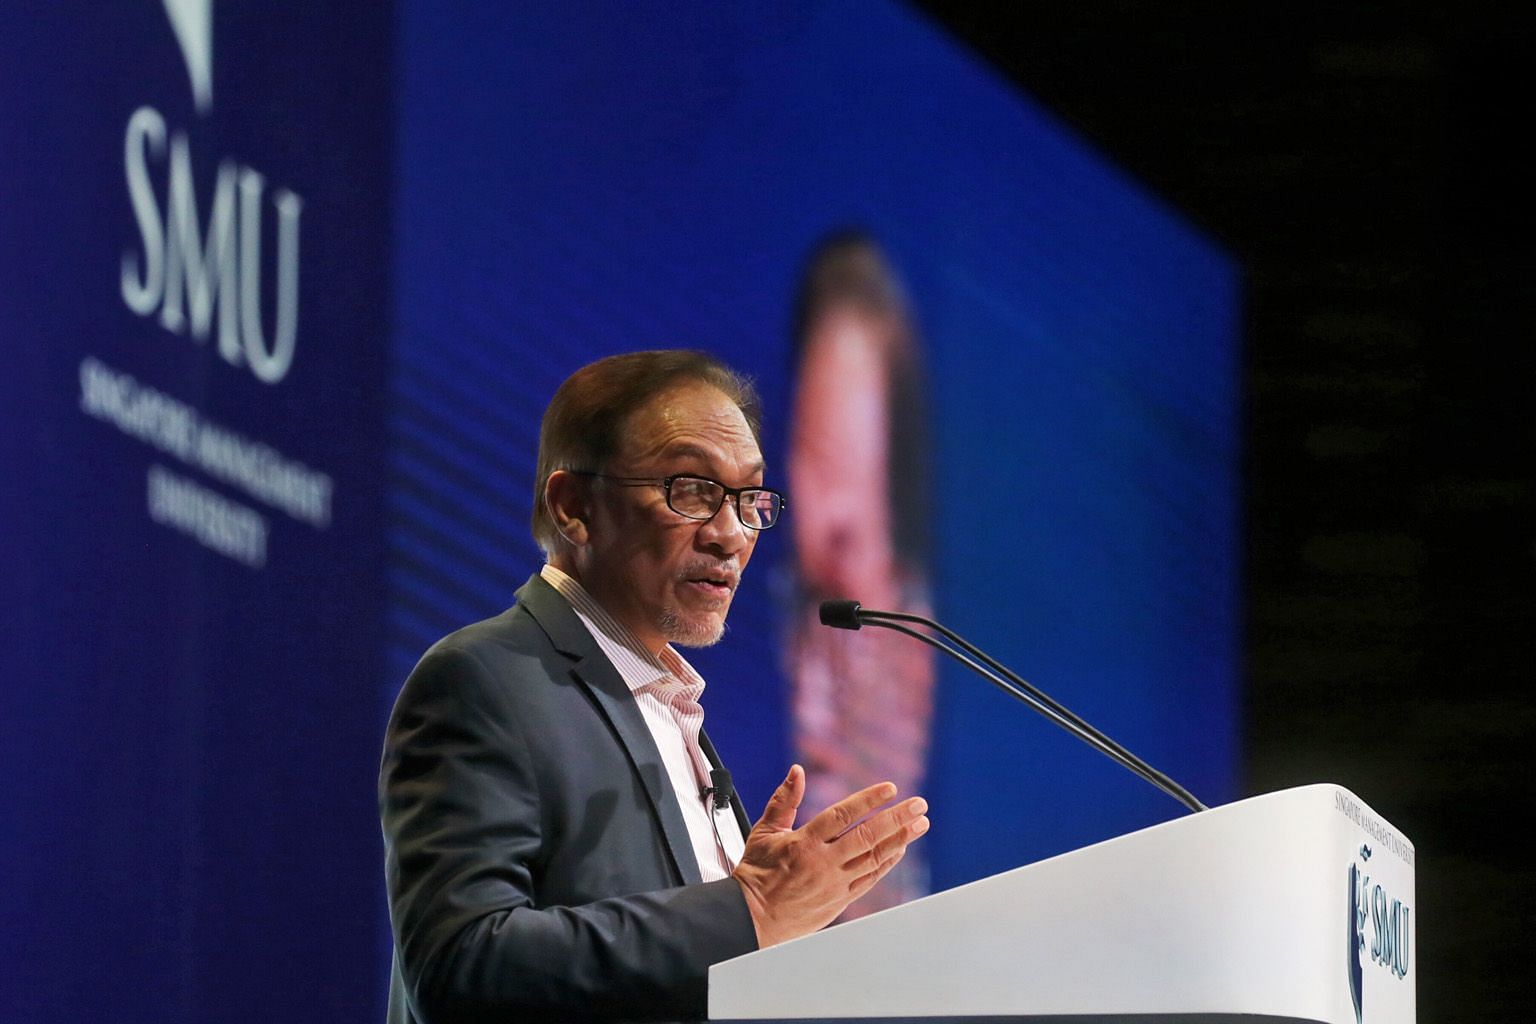 Former Malaysian deputy prime minister Anwar Ibrahim's lecture yesterday was peppered with quotes from poets and philosophers. It was his second appearance in Singapore since his release from prison in May.